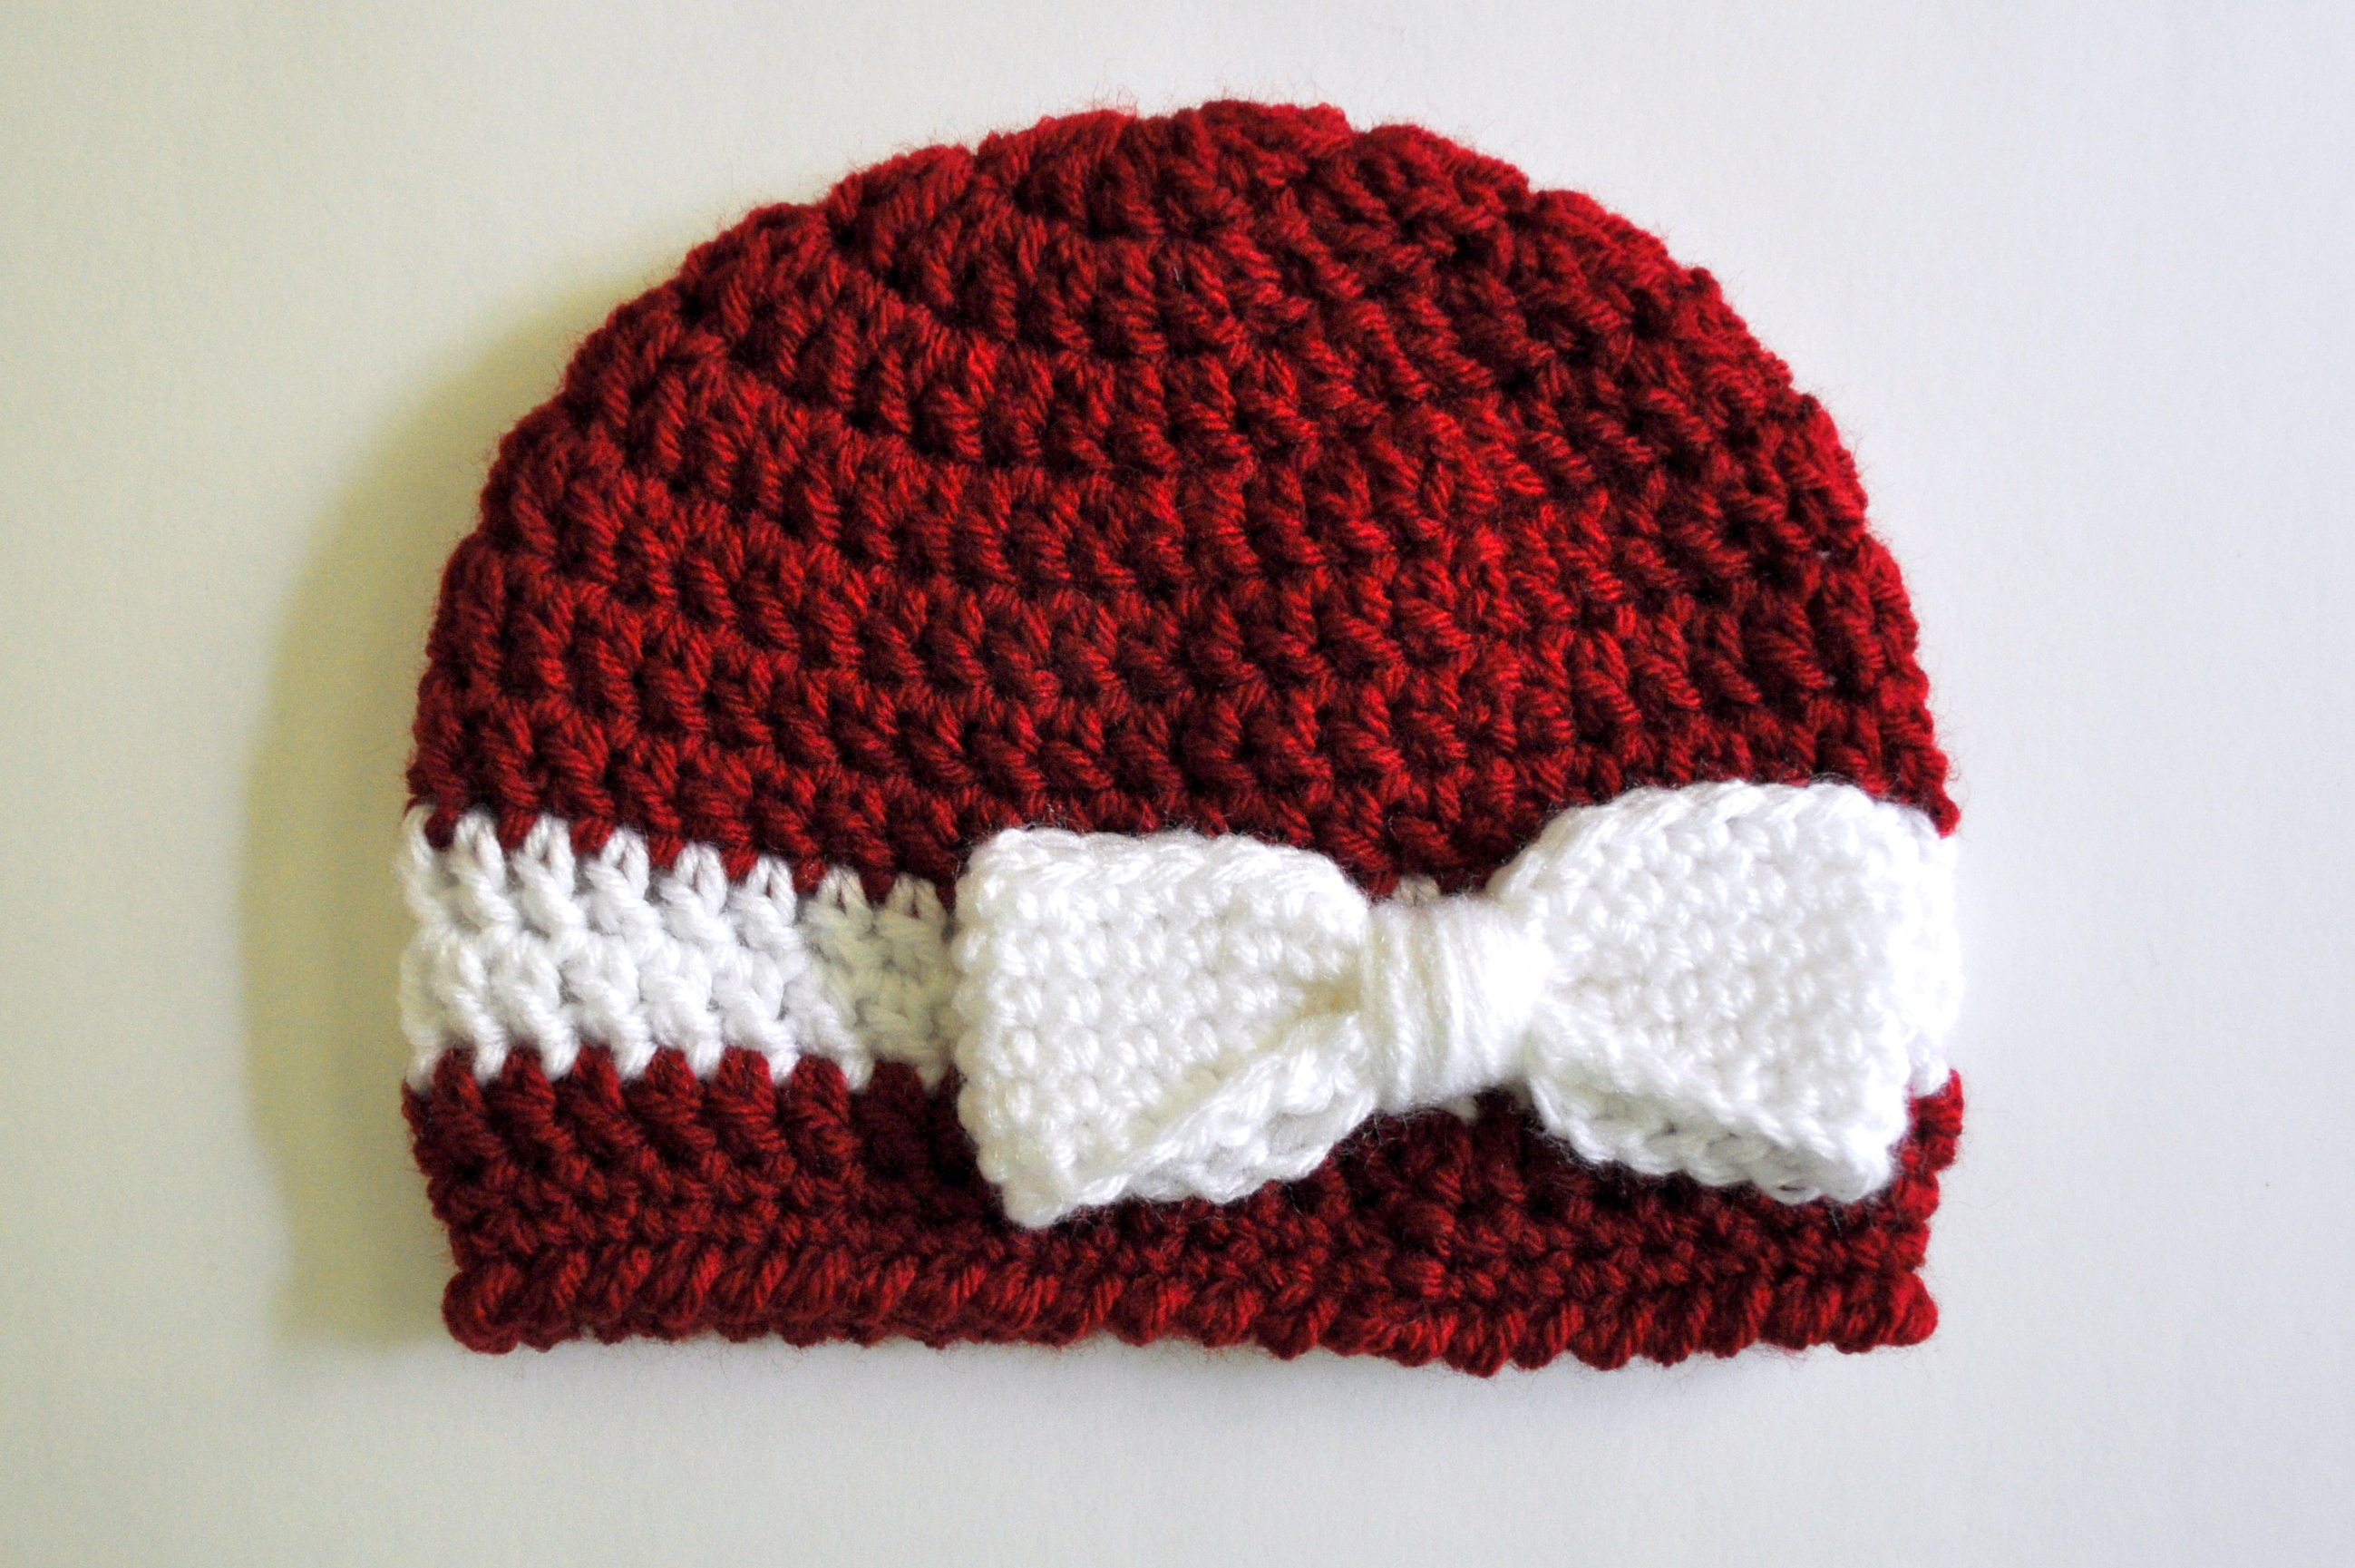 crochet baby hats crochet ribbon and bow baby hat pattern | classy crochet uclxrag